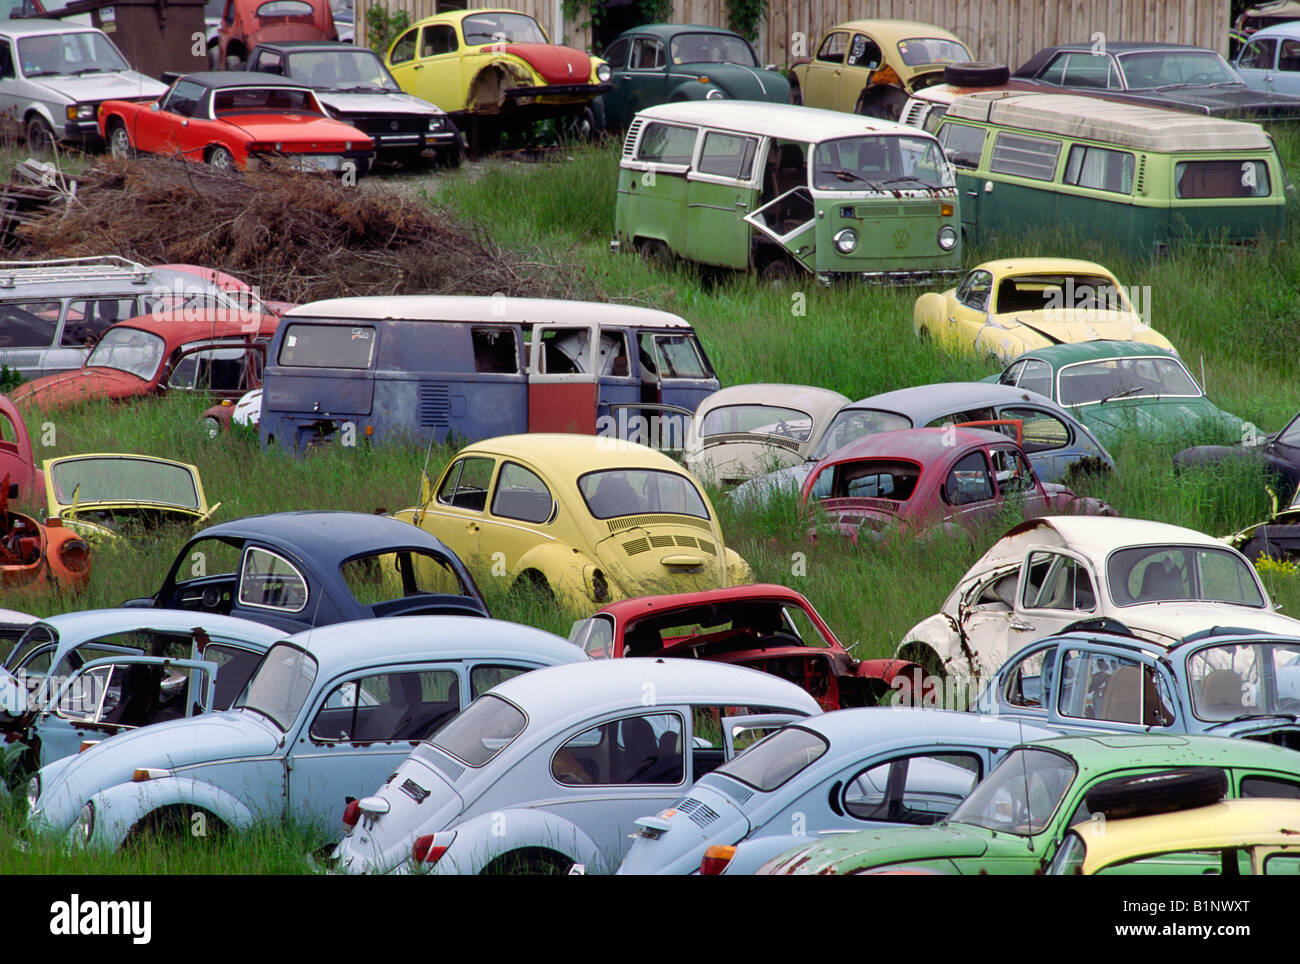 Volkswagen junk yard Stock Photo: 18306368 - Alamy